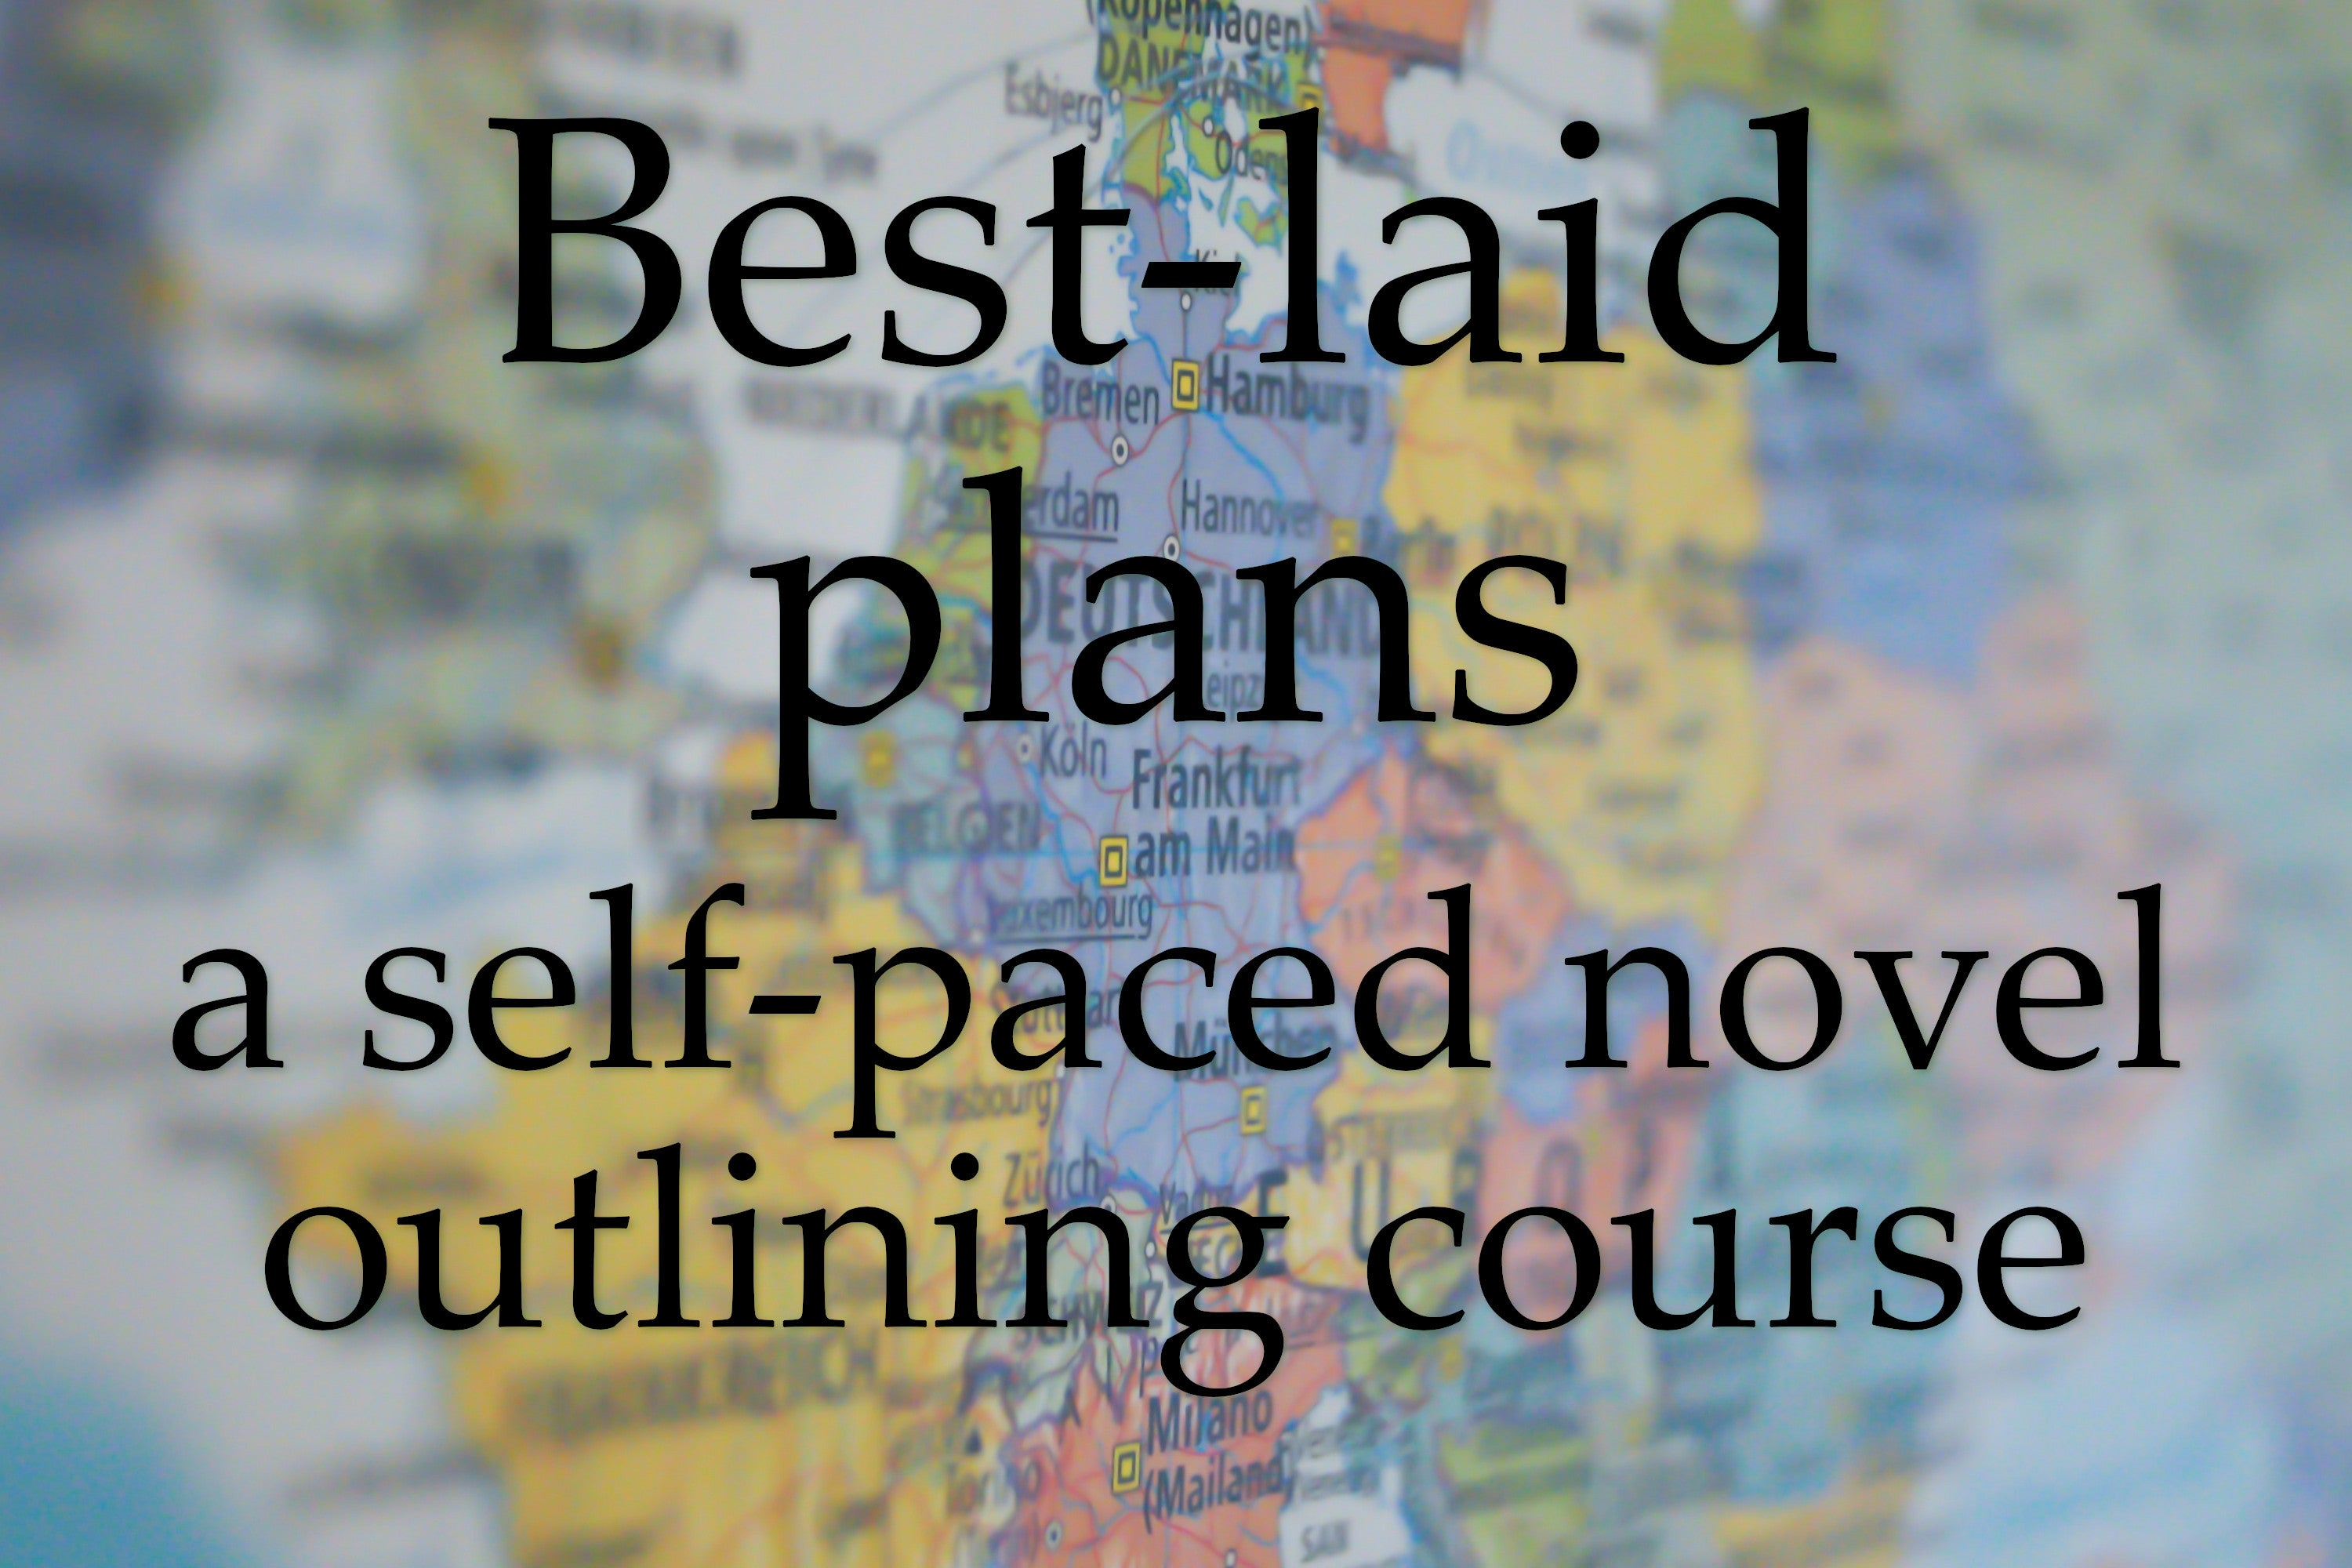 Darling Axe Academy – Best-laid plans: a self-paced outlining course